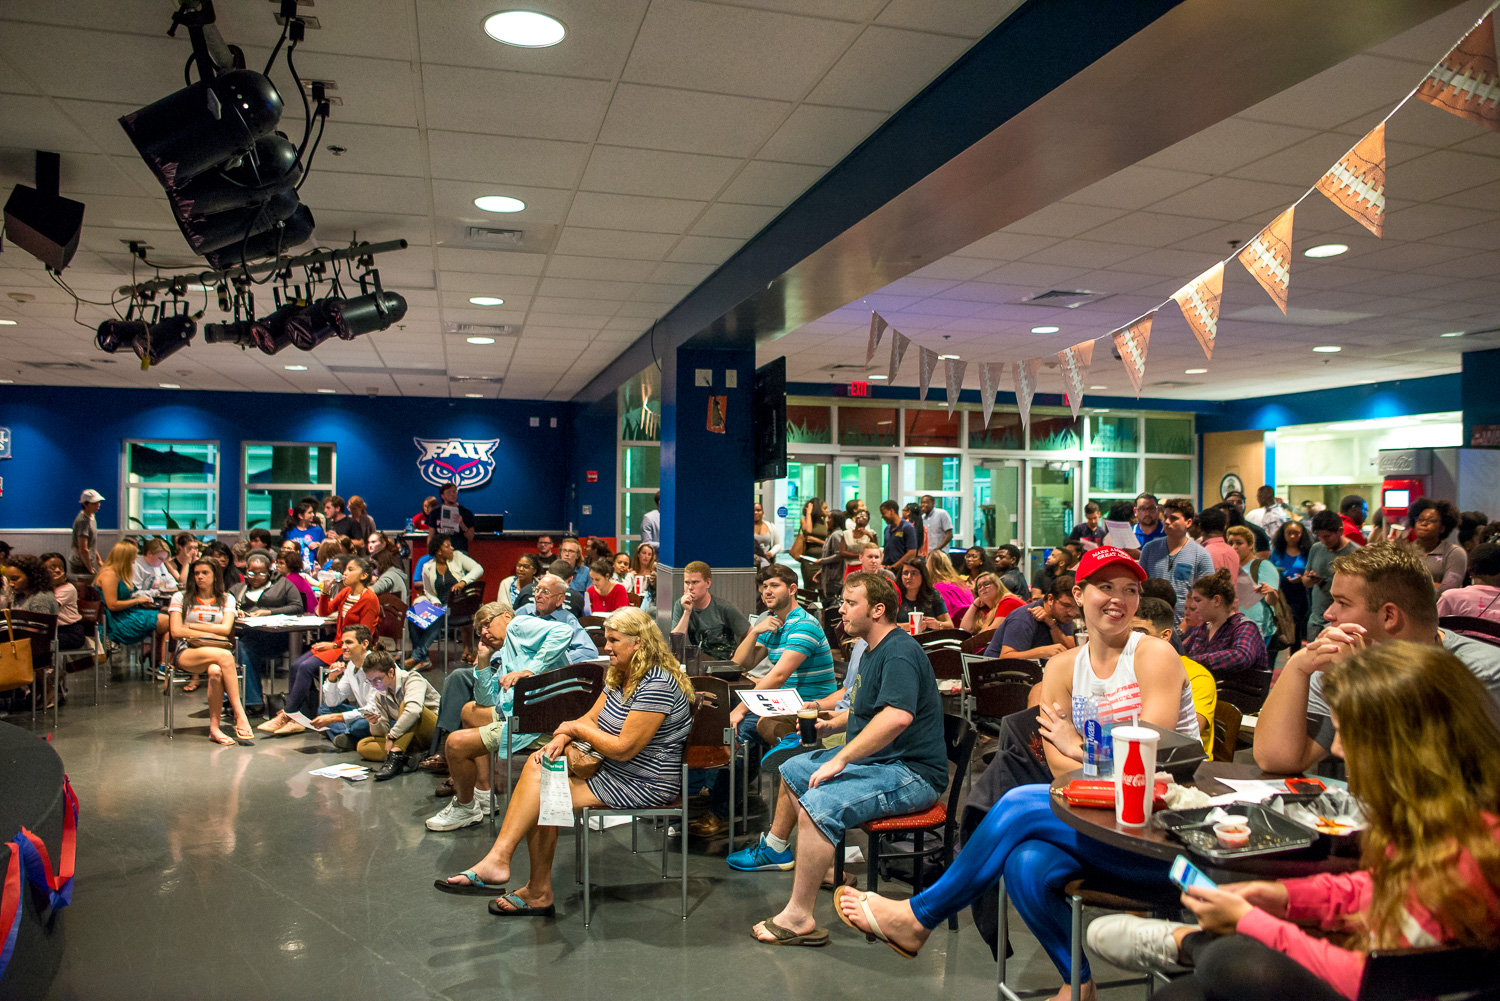 A variety of student groups congregated at The Burrow to watch the first presidential debate between Donald Trump and Hillary Clinton, including the College Republicans and College Democrats.  Max Jackson | Staff Photographer